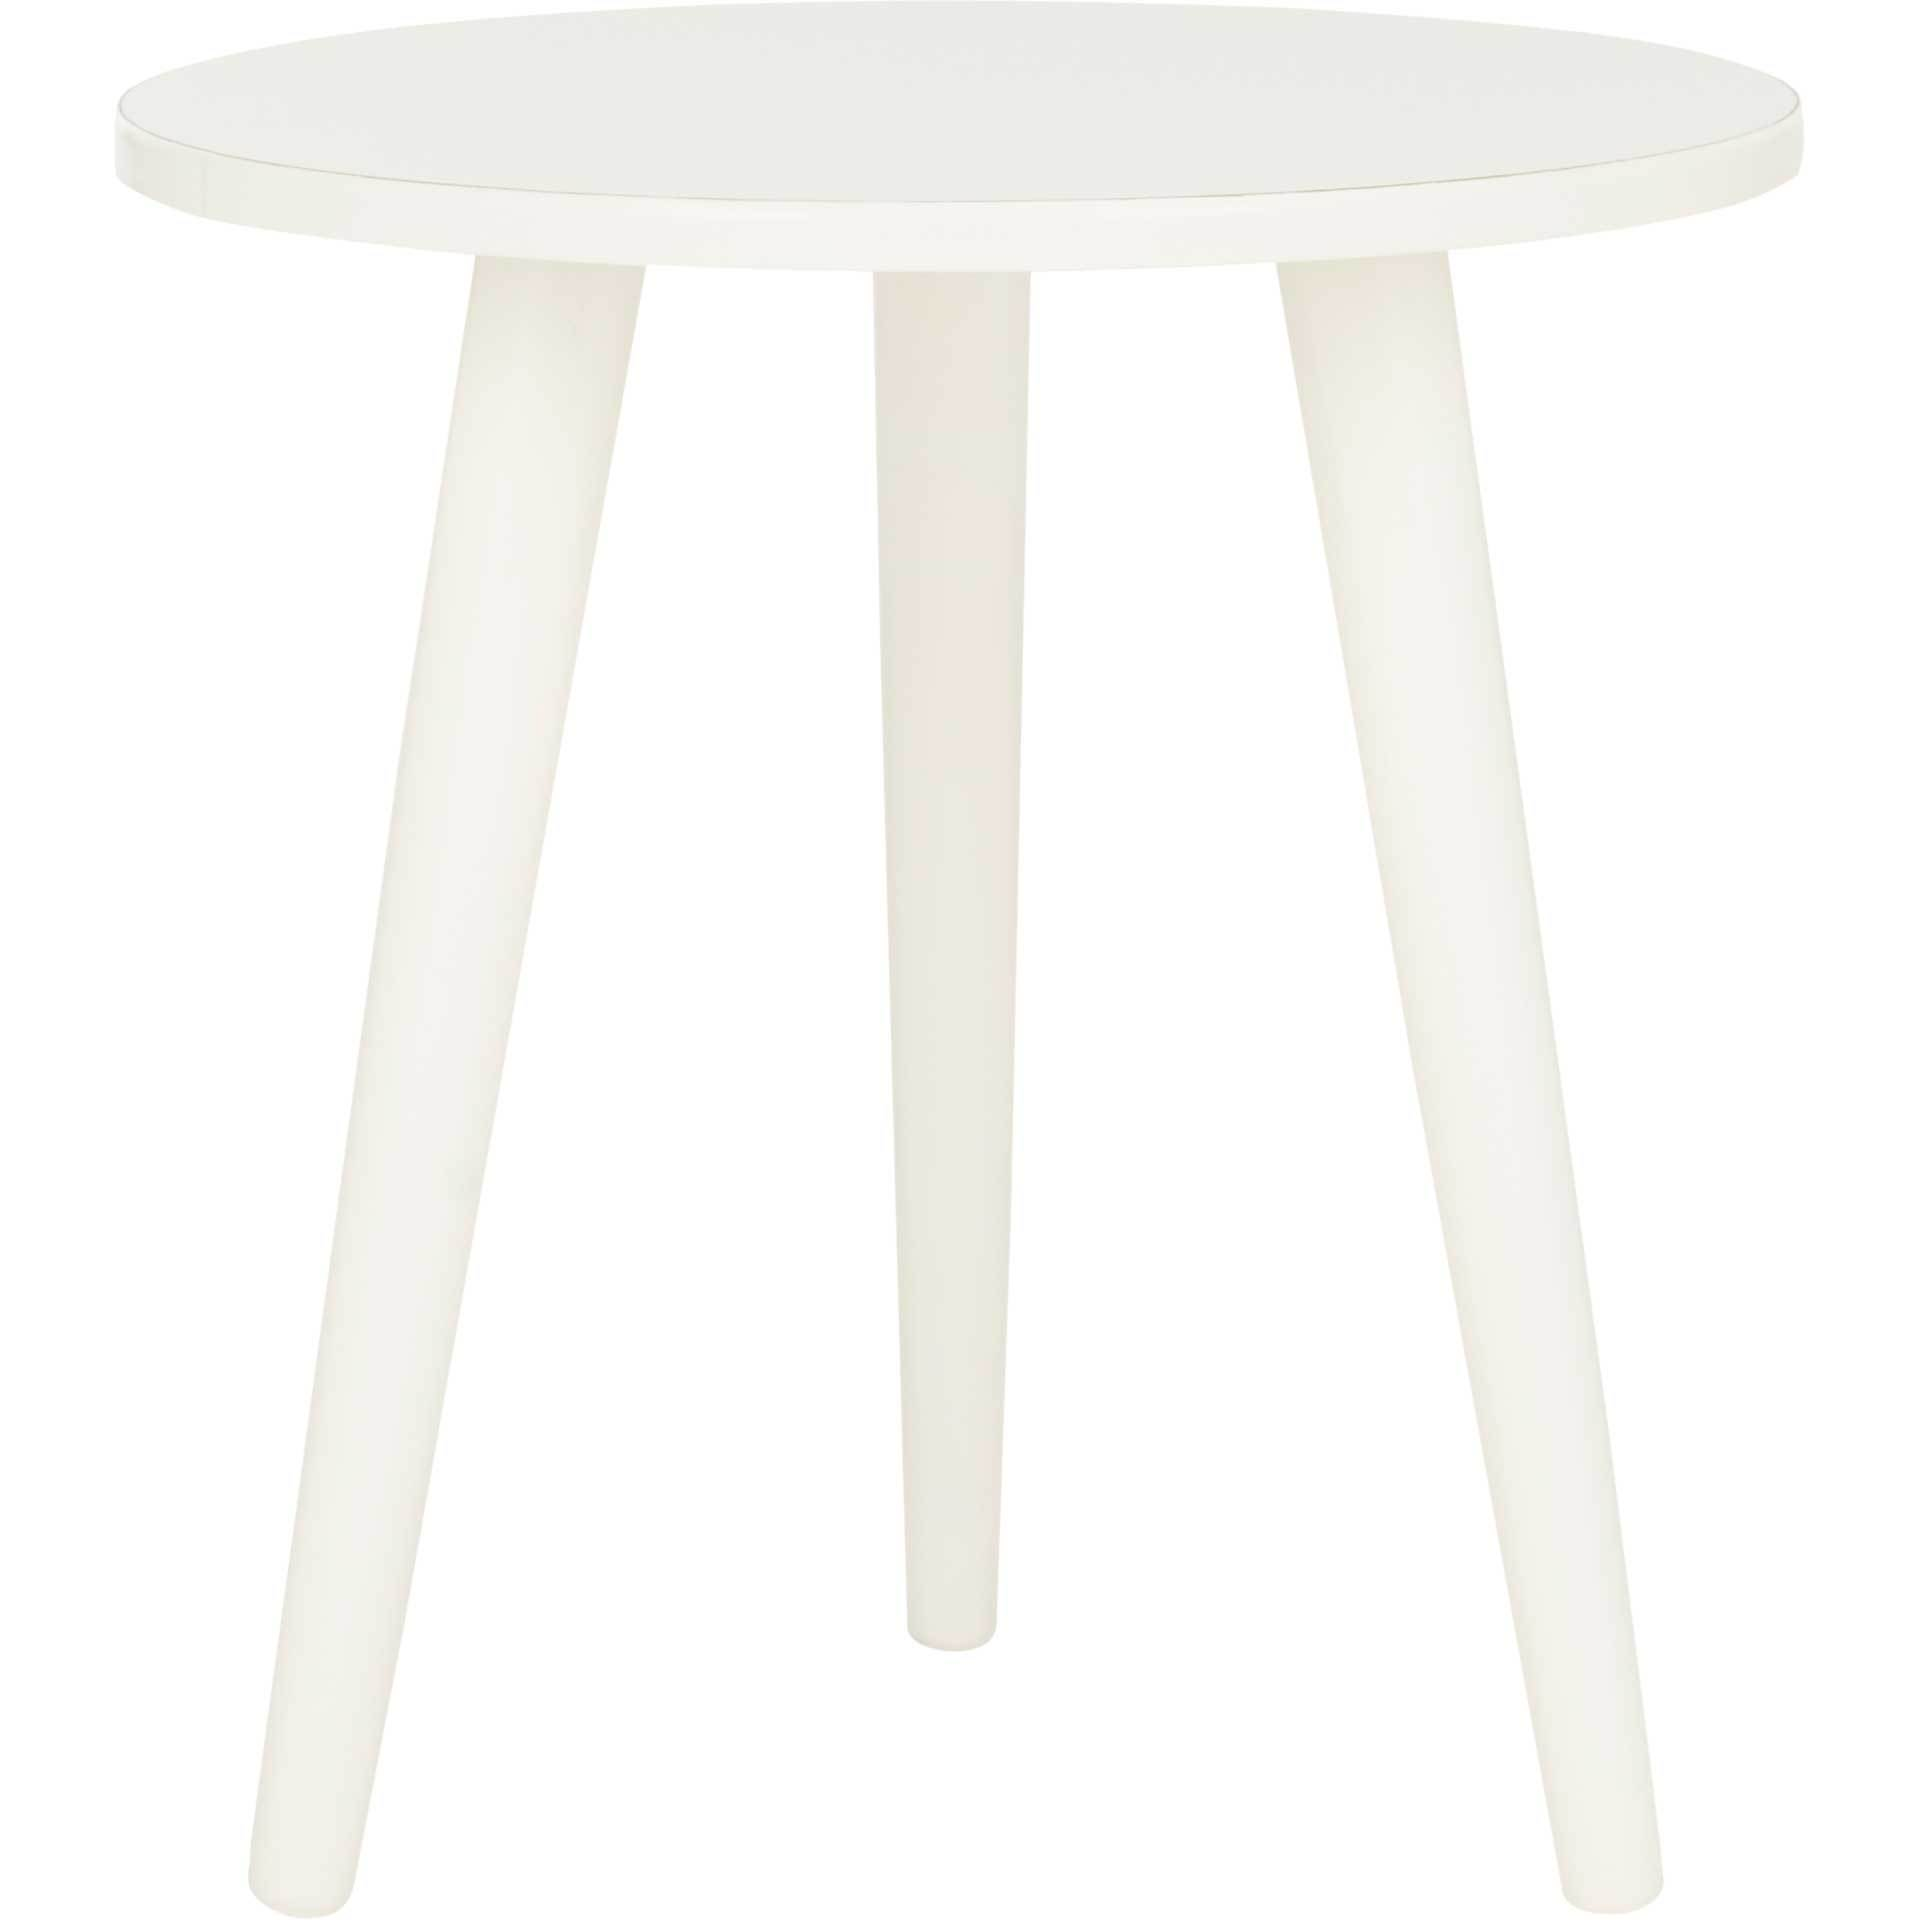 orion accent table distressed white froy front pedestal inch tablecloth oriental marble gold lamp target galvanized metal end dimmable chestnut glass tennis paddles cordless lamps